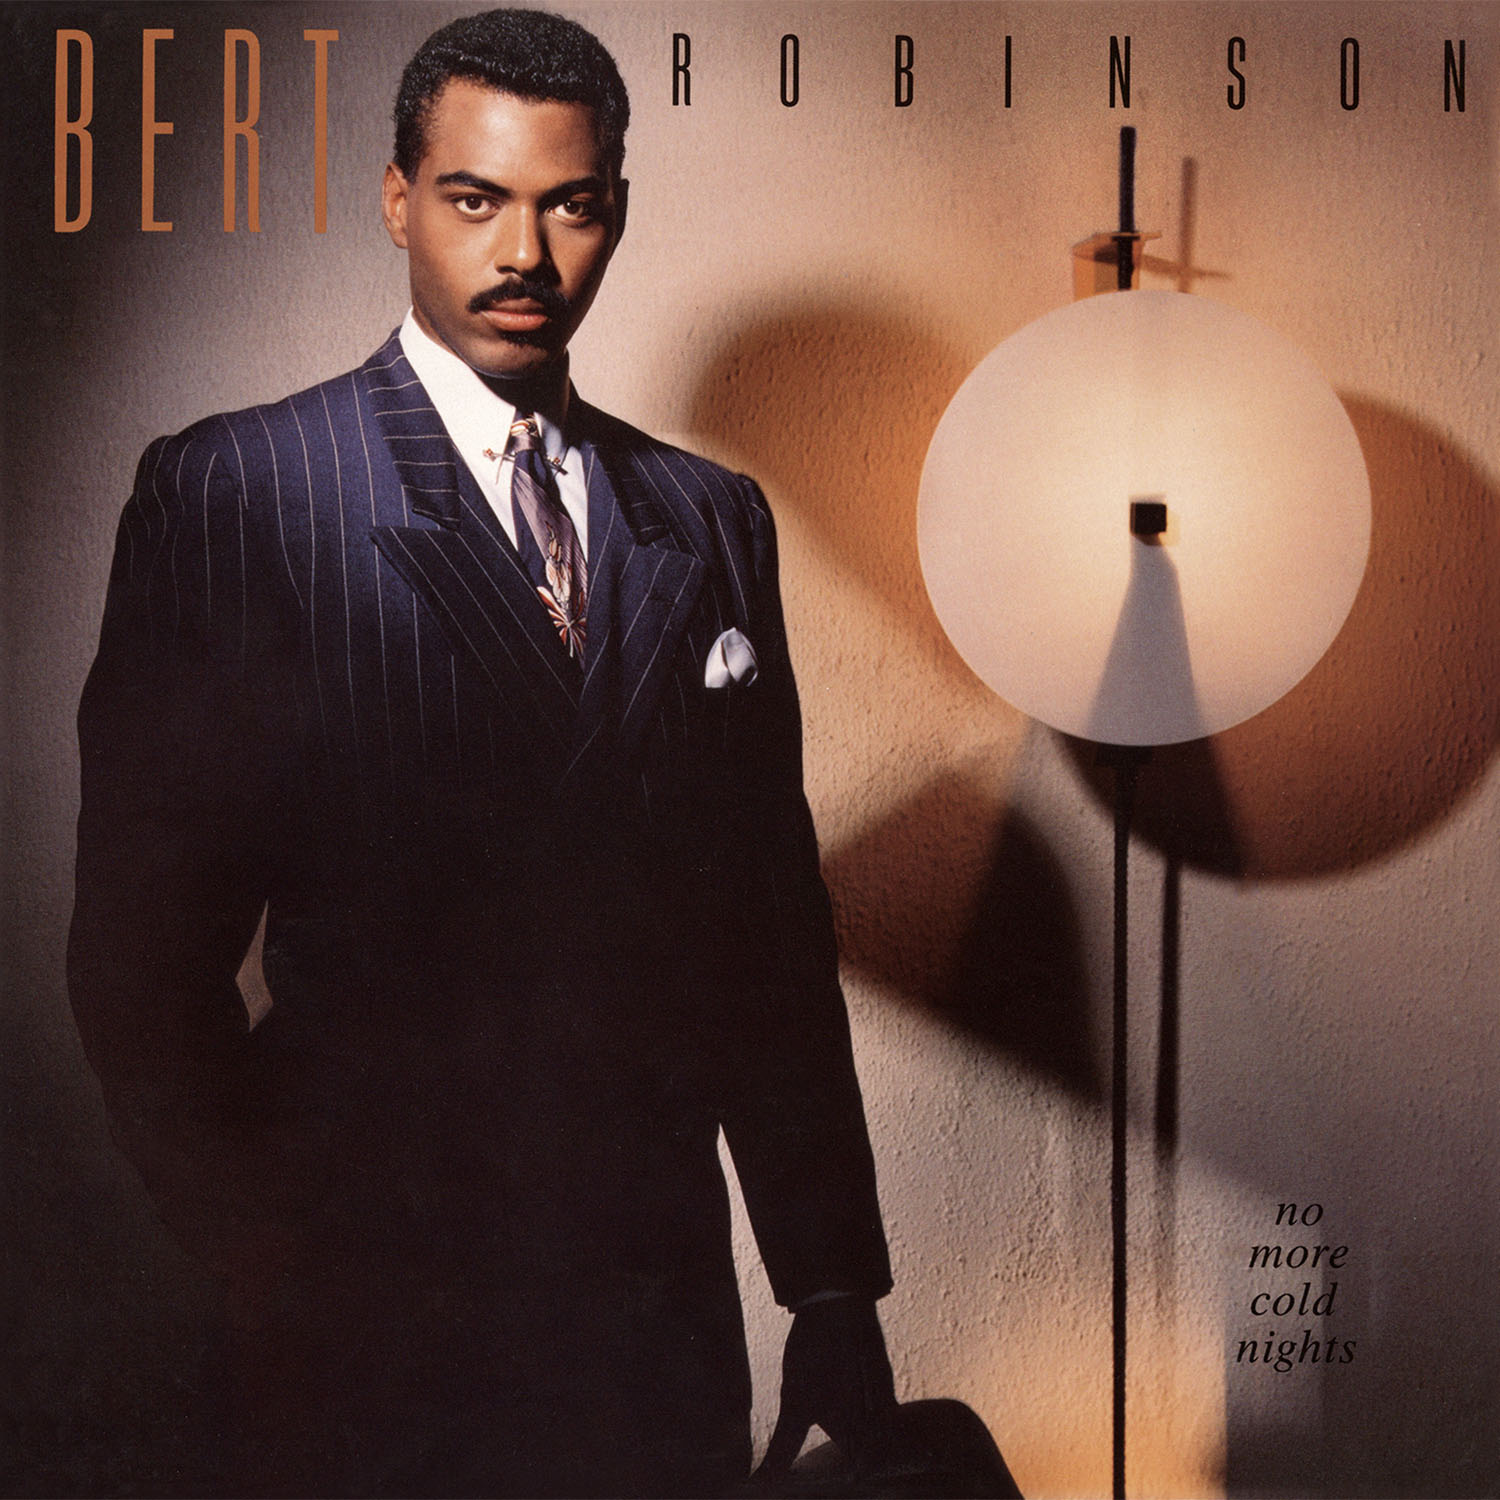 Bert Robinson/NO MORE COLD NIGHTS CD